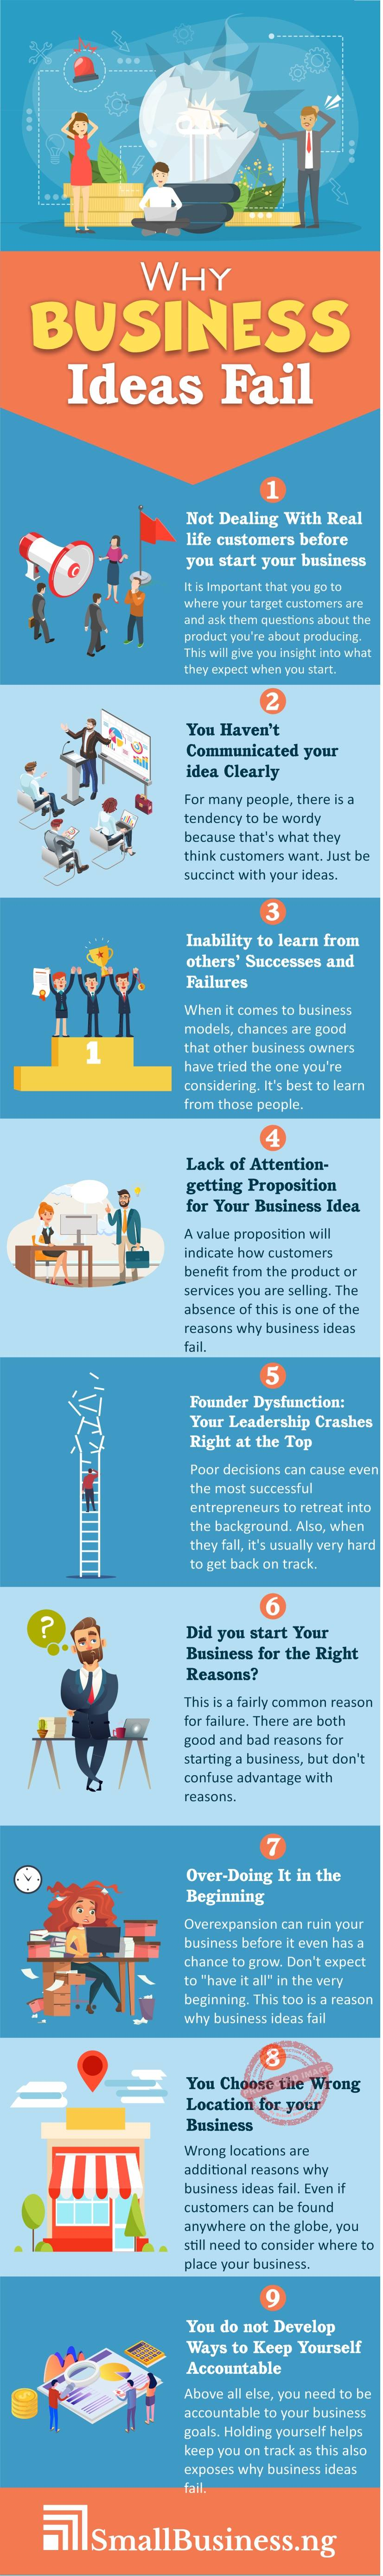 Why Business Ideas Fail Infographic